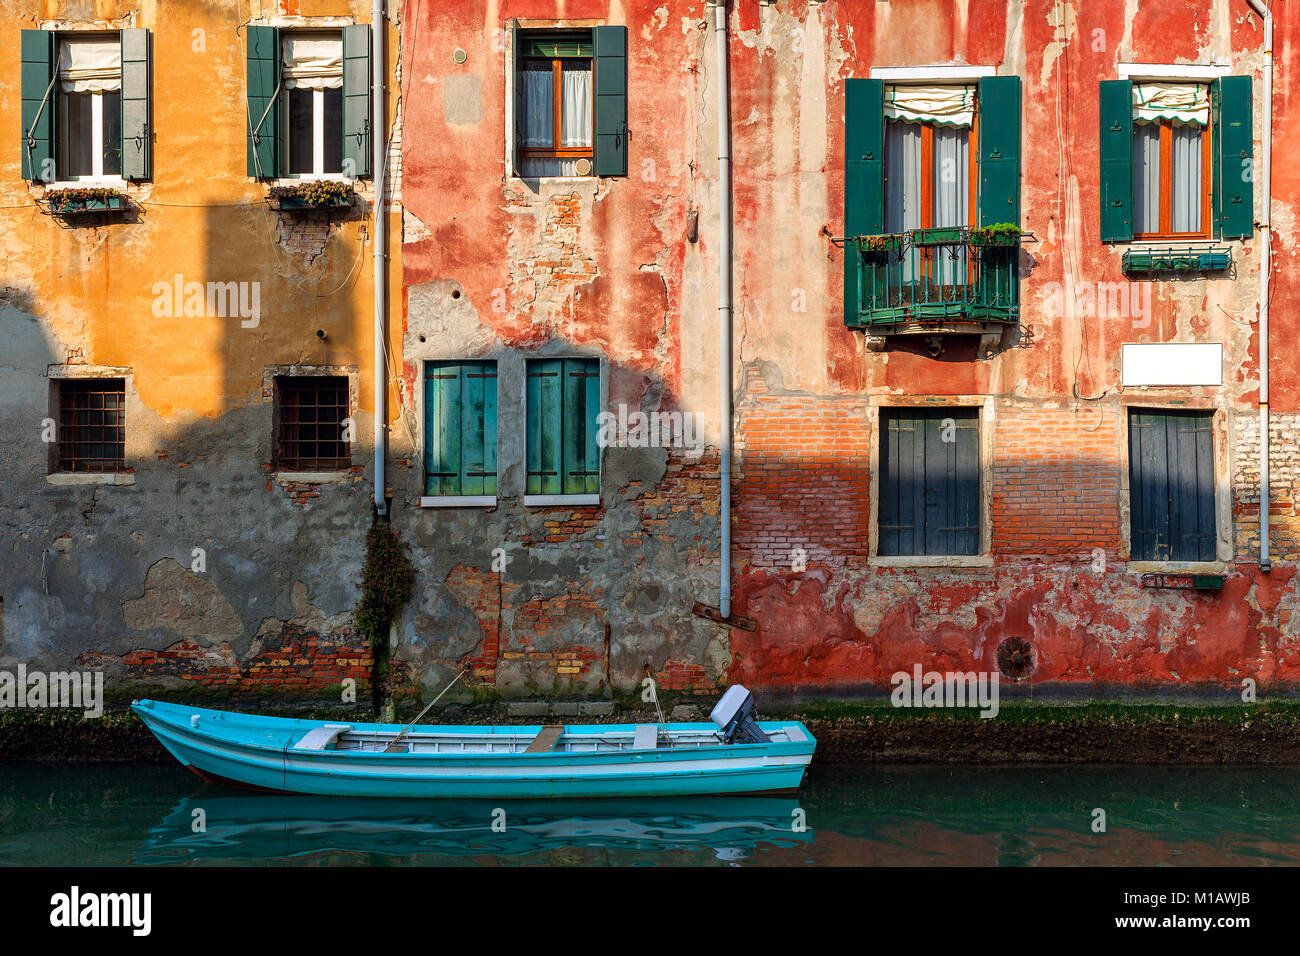 Boat on small canal moored against old colorful brick house in Venice, Italy. - Stock Image